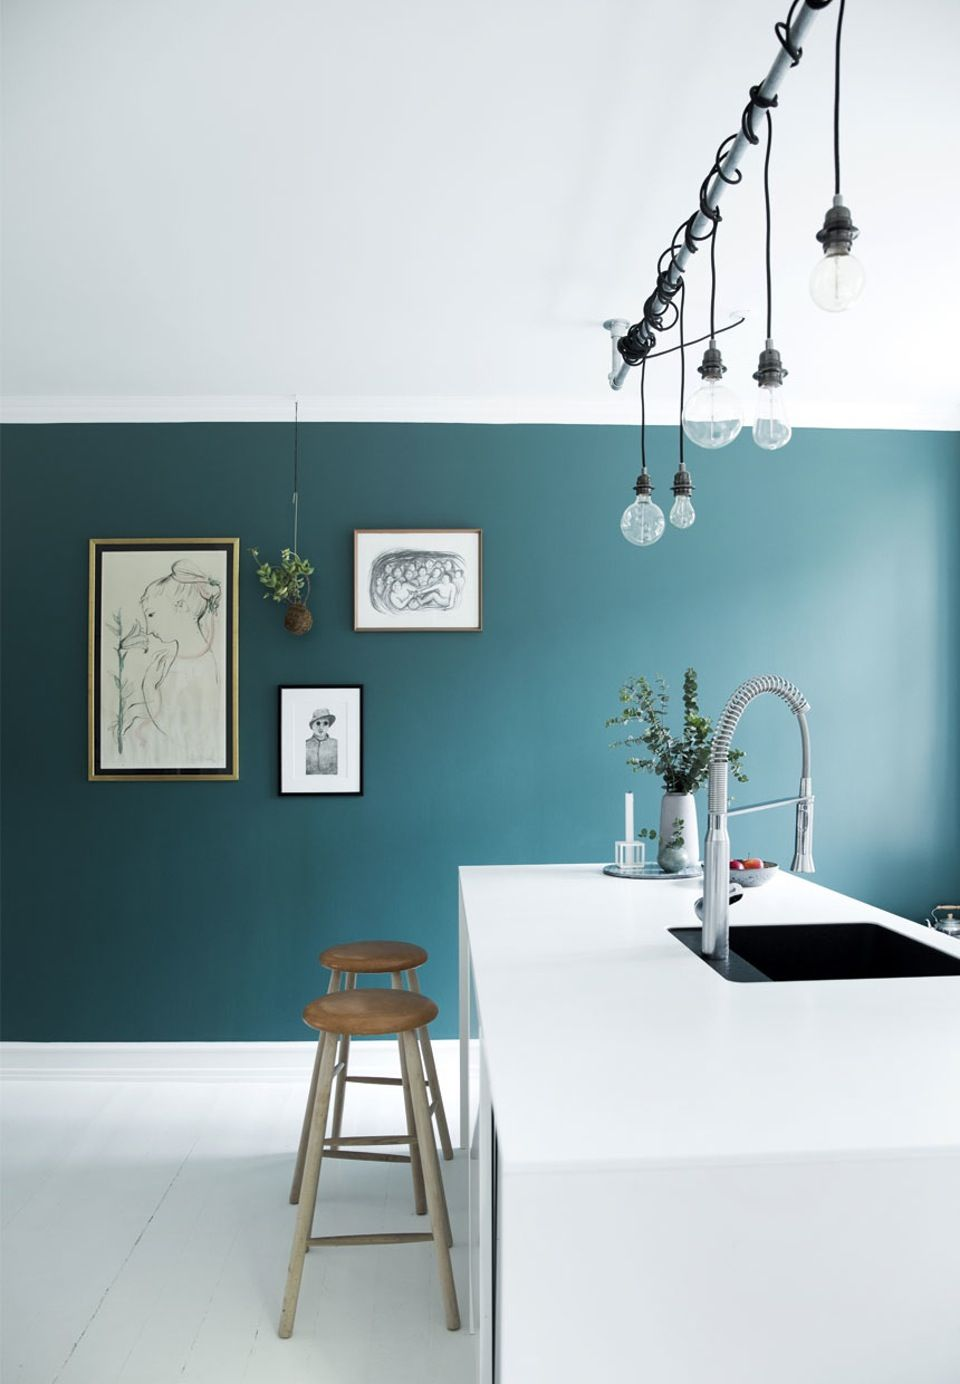 White wood and a wall | the best kinds of turquoise | Pinterest ...